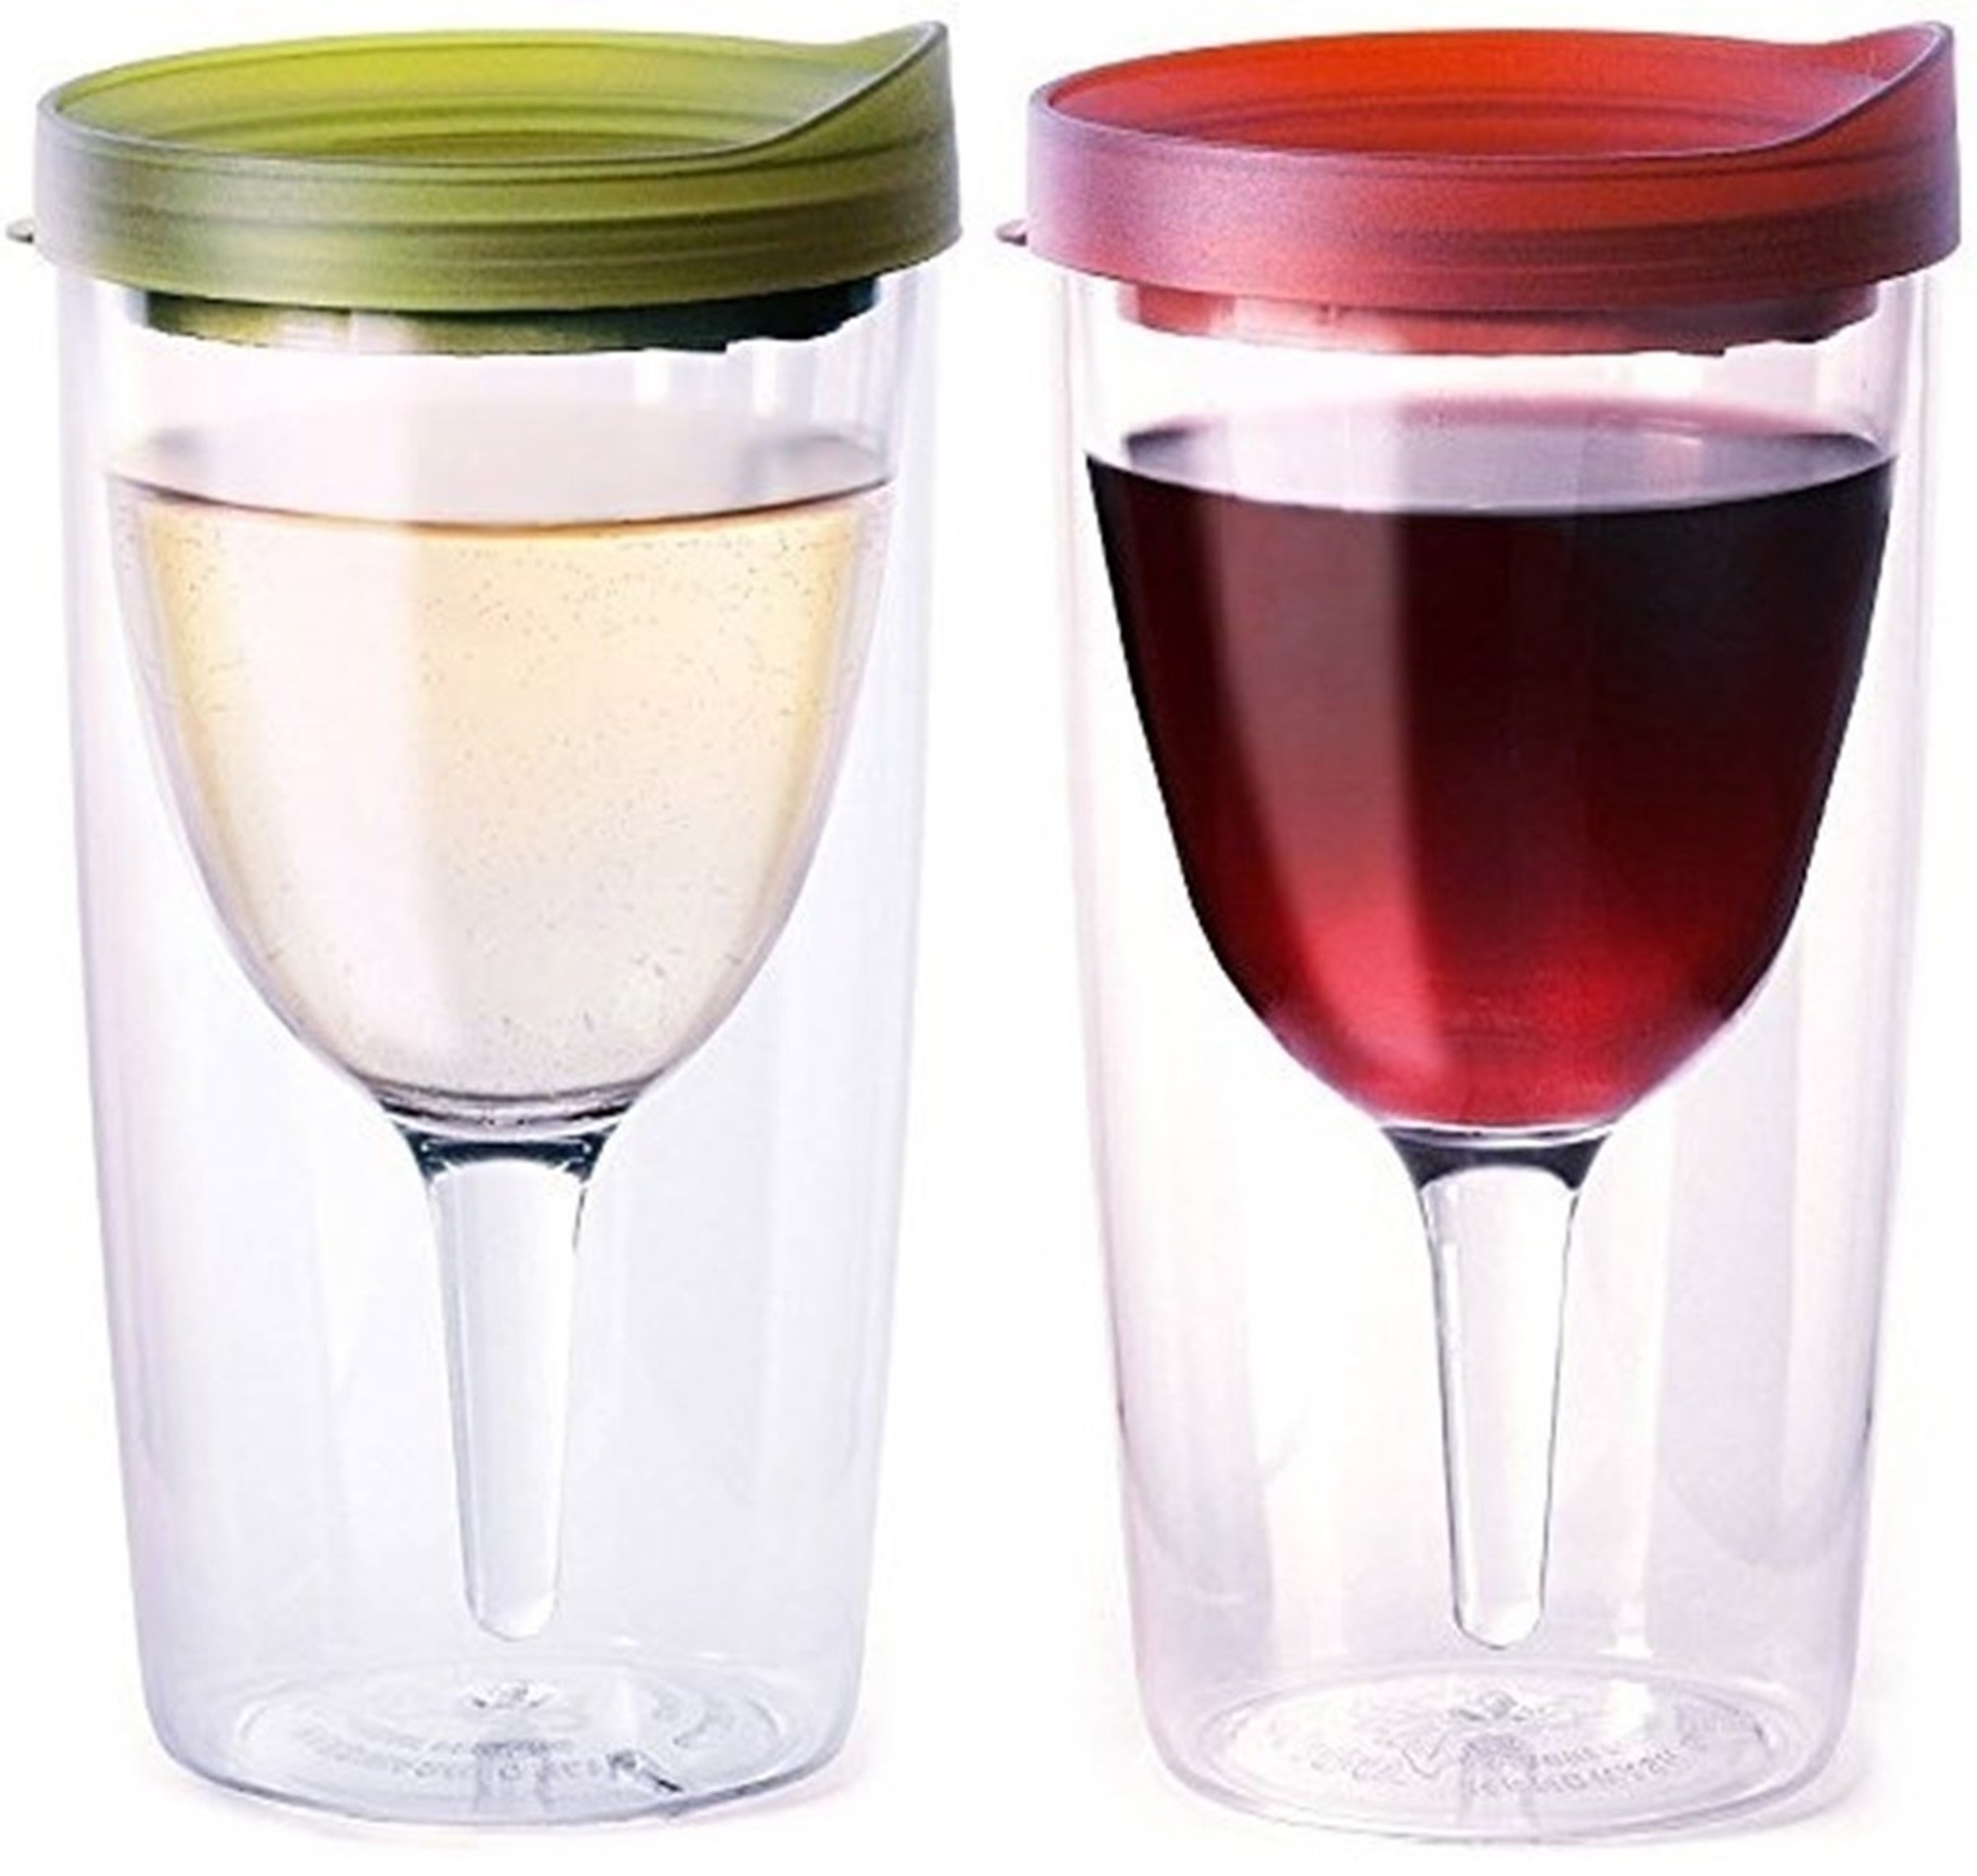 Vino2Go Double Wall Insulated Acrylic Wine Cup Tumbler with Verde and Merlot Slide Top Lid, 10 oz, Pack of 2